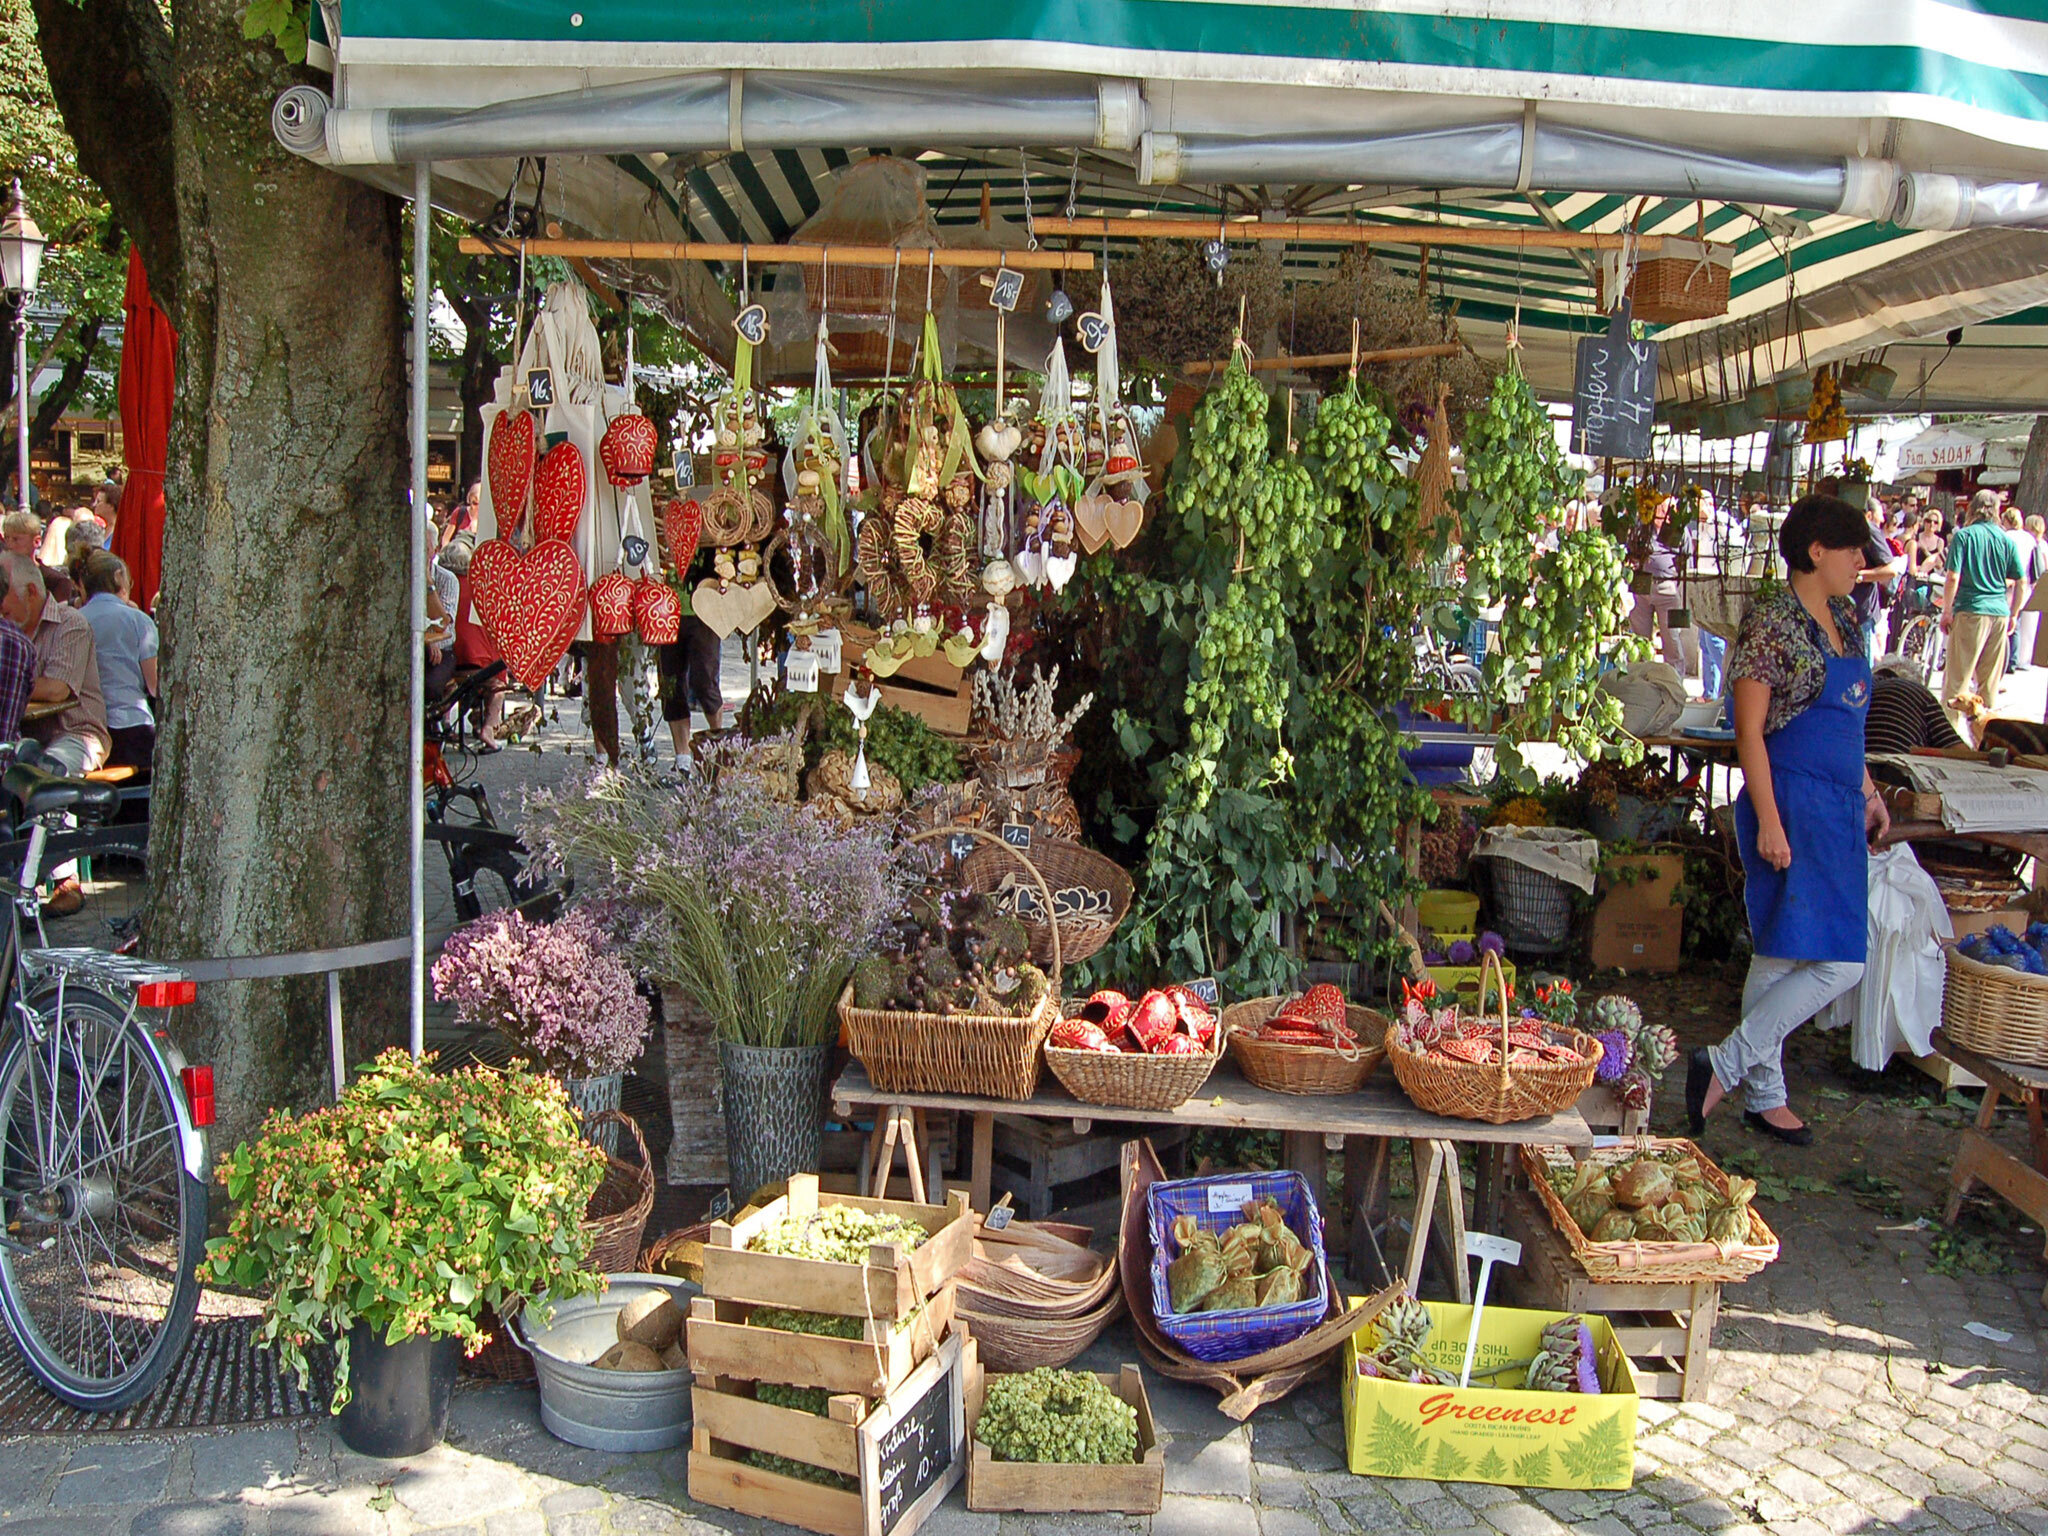 A stall selling fruit, veg and flowers at Viktualienmarkt in Munich